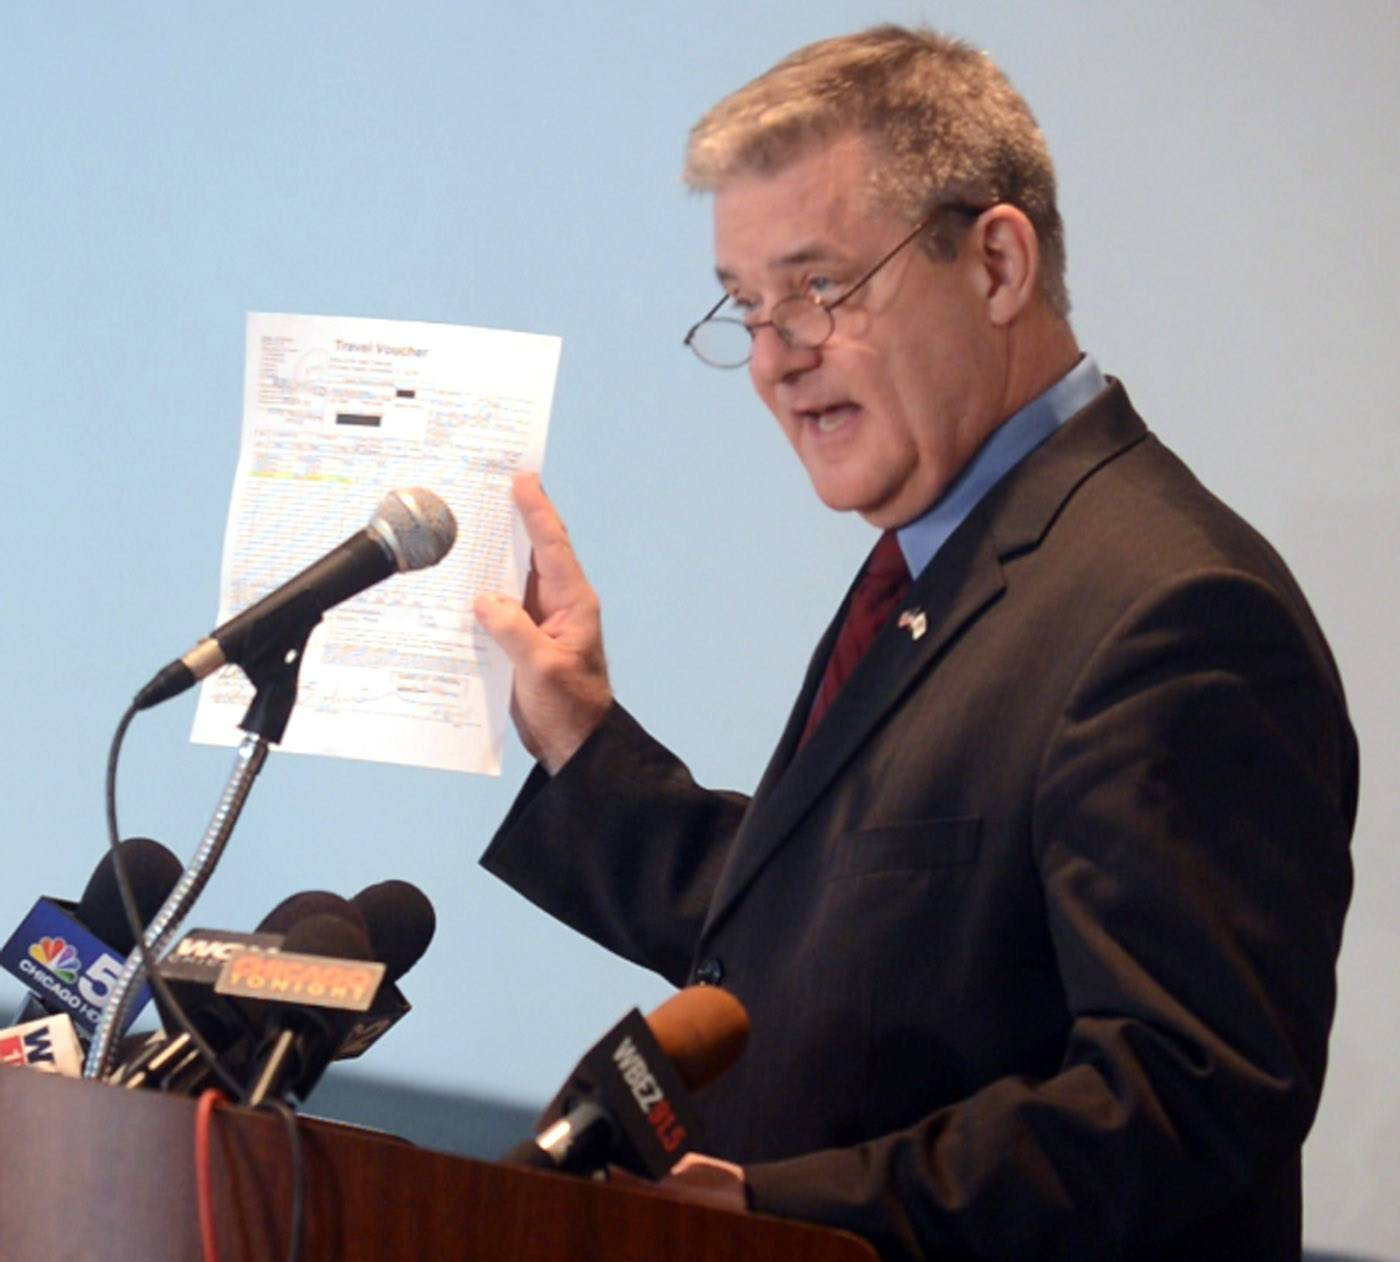 Illinois State Treasurer Dan Rutherford speaks during a news conference in Schaumburg about sexual harassment accusations that have been made against him. He distributed documents he said refute the claims.